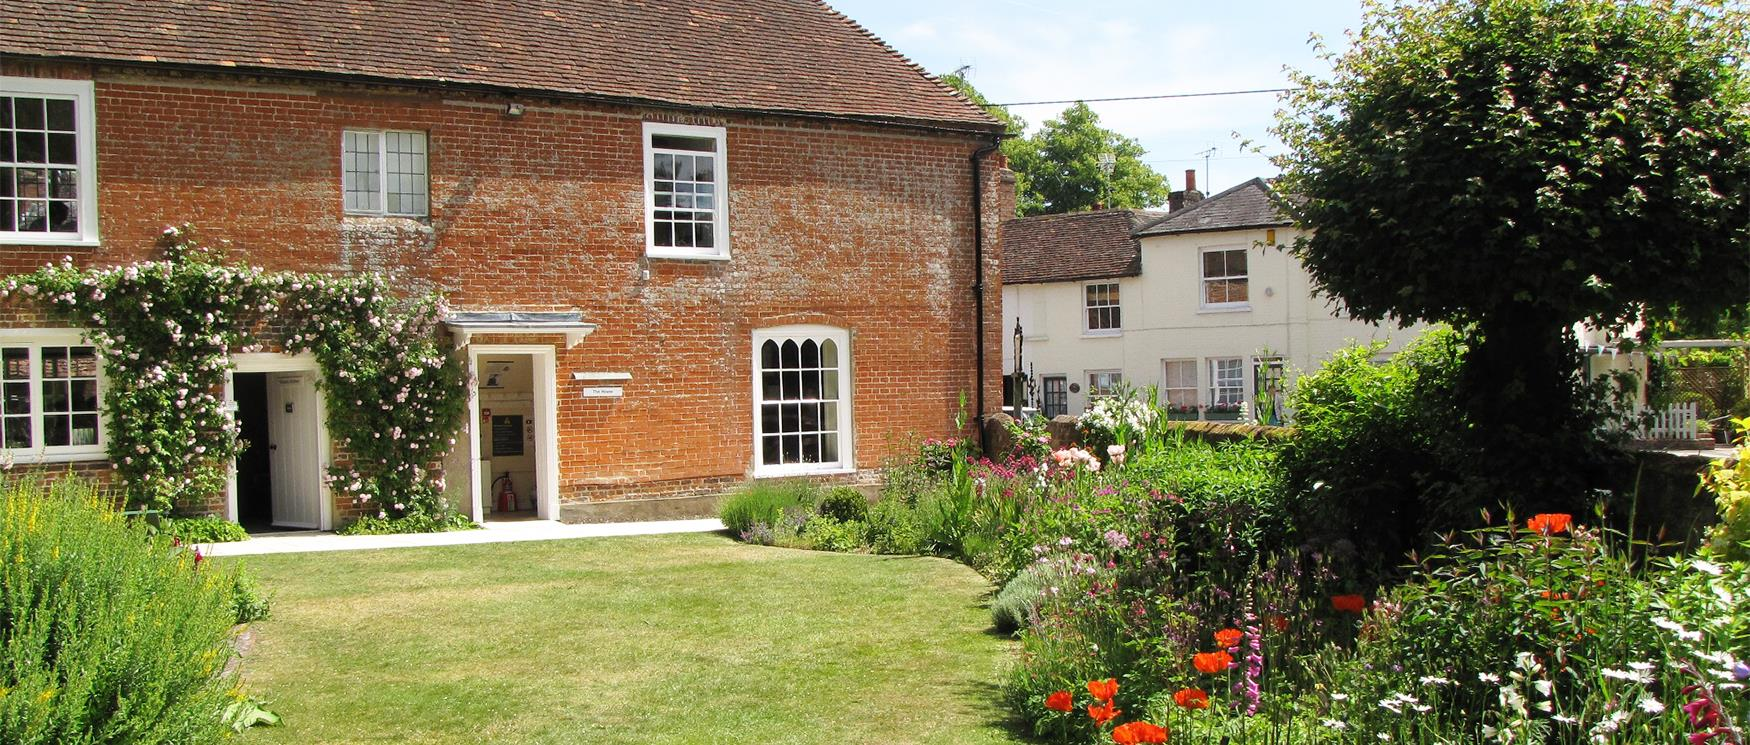 The Village of Chawton, Famous for Jane Austen